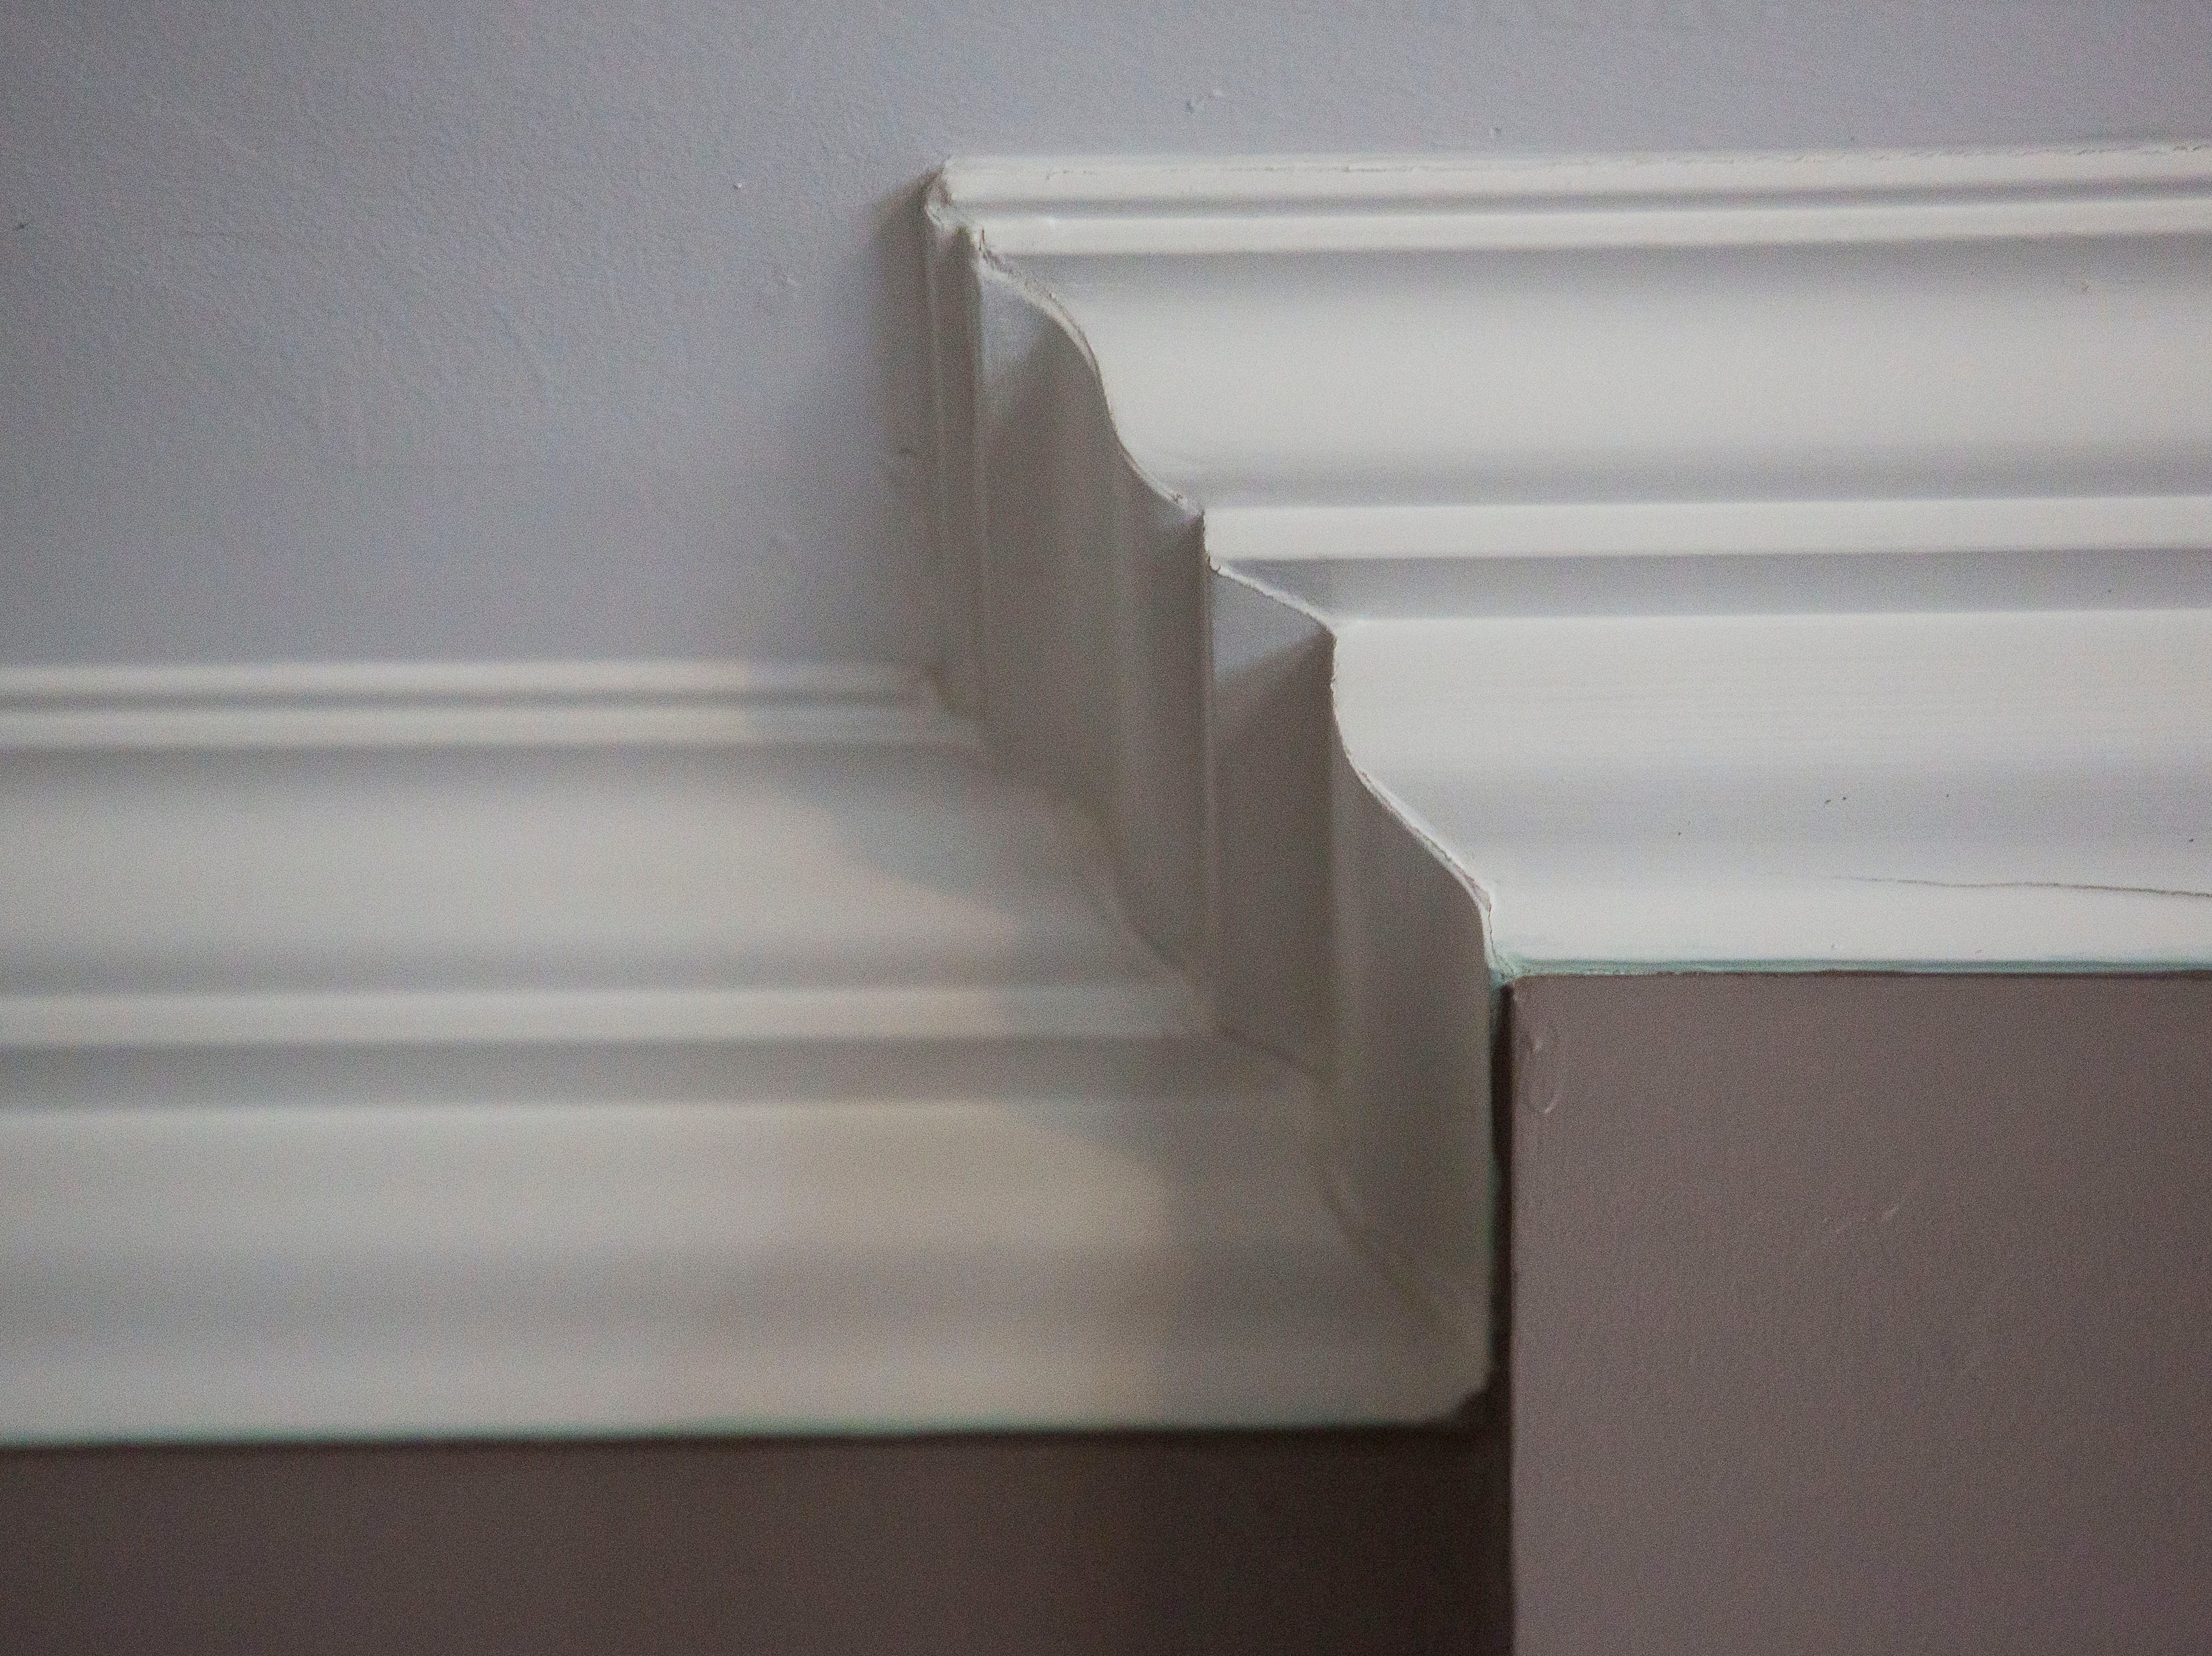 Original crown molding at historic Cherokee Triangle home in Louisville, KY.